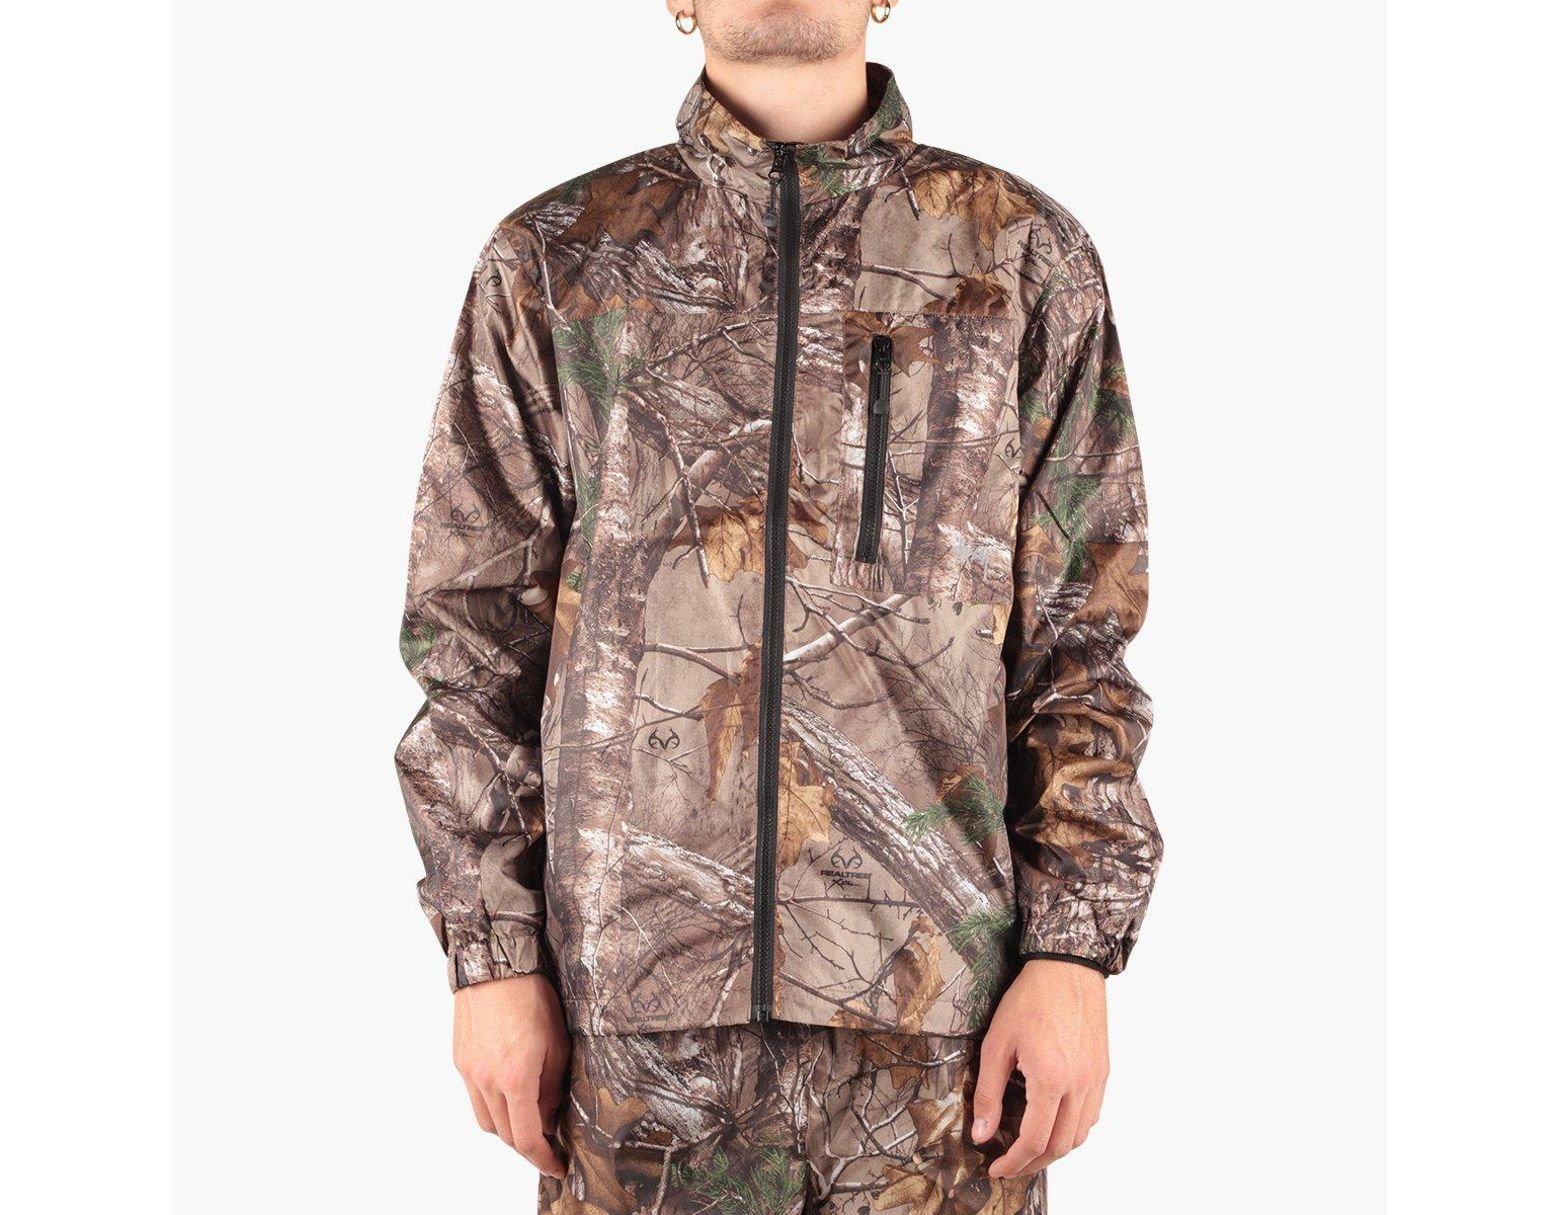 b0968f95349db Stussy Realtree Micro Rip Jacket for Men - Save 80% - Lyst